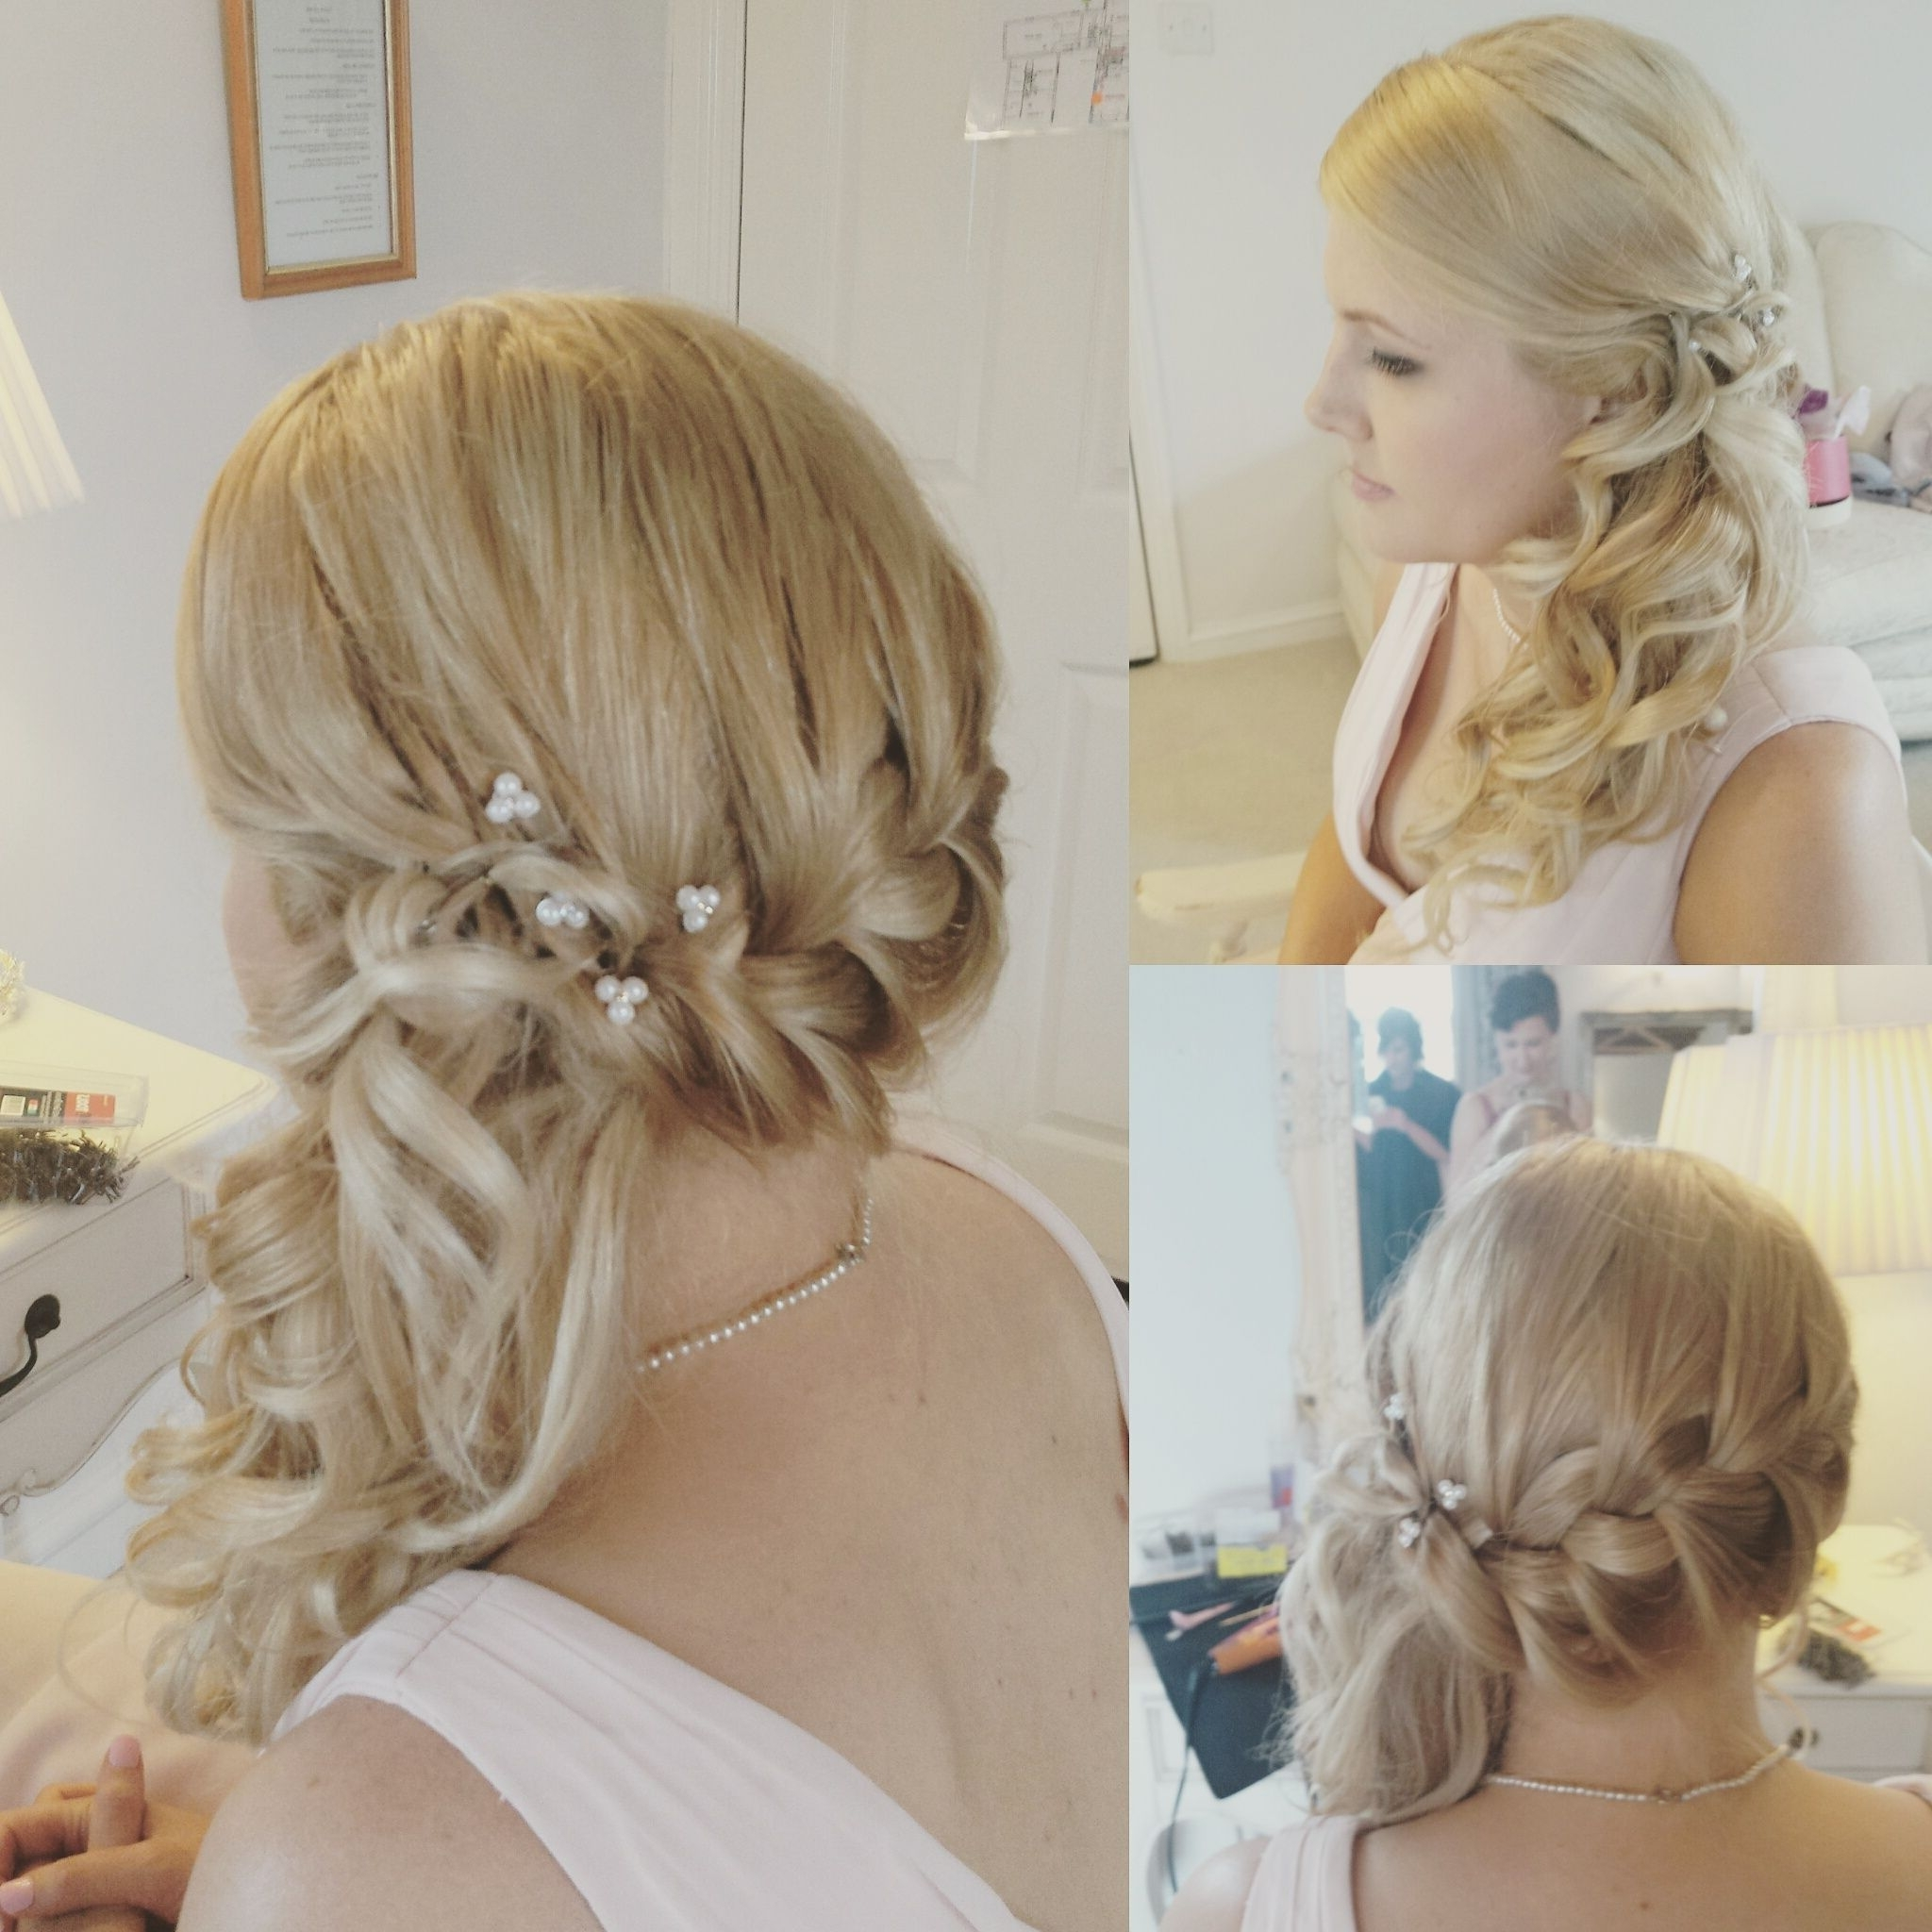 Plaits And Curls Bridal Hair Look. Norwich (View 7 of 15)